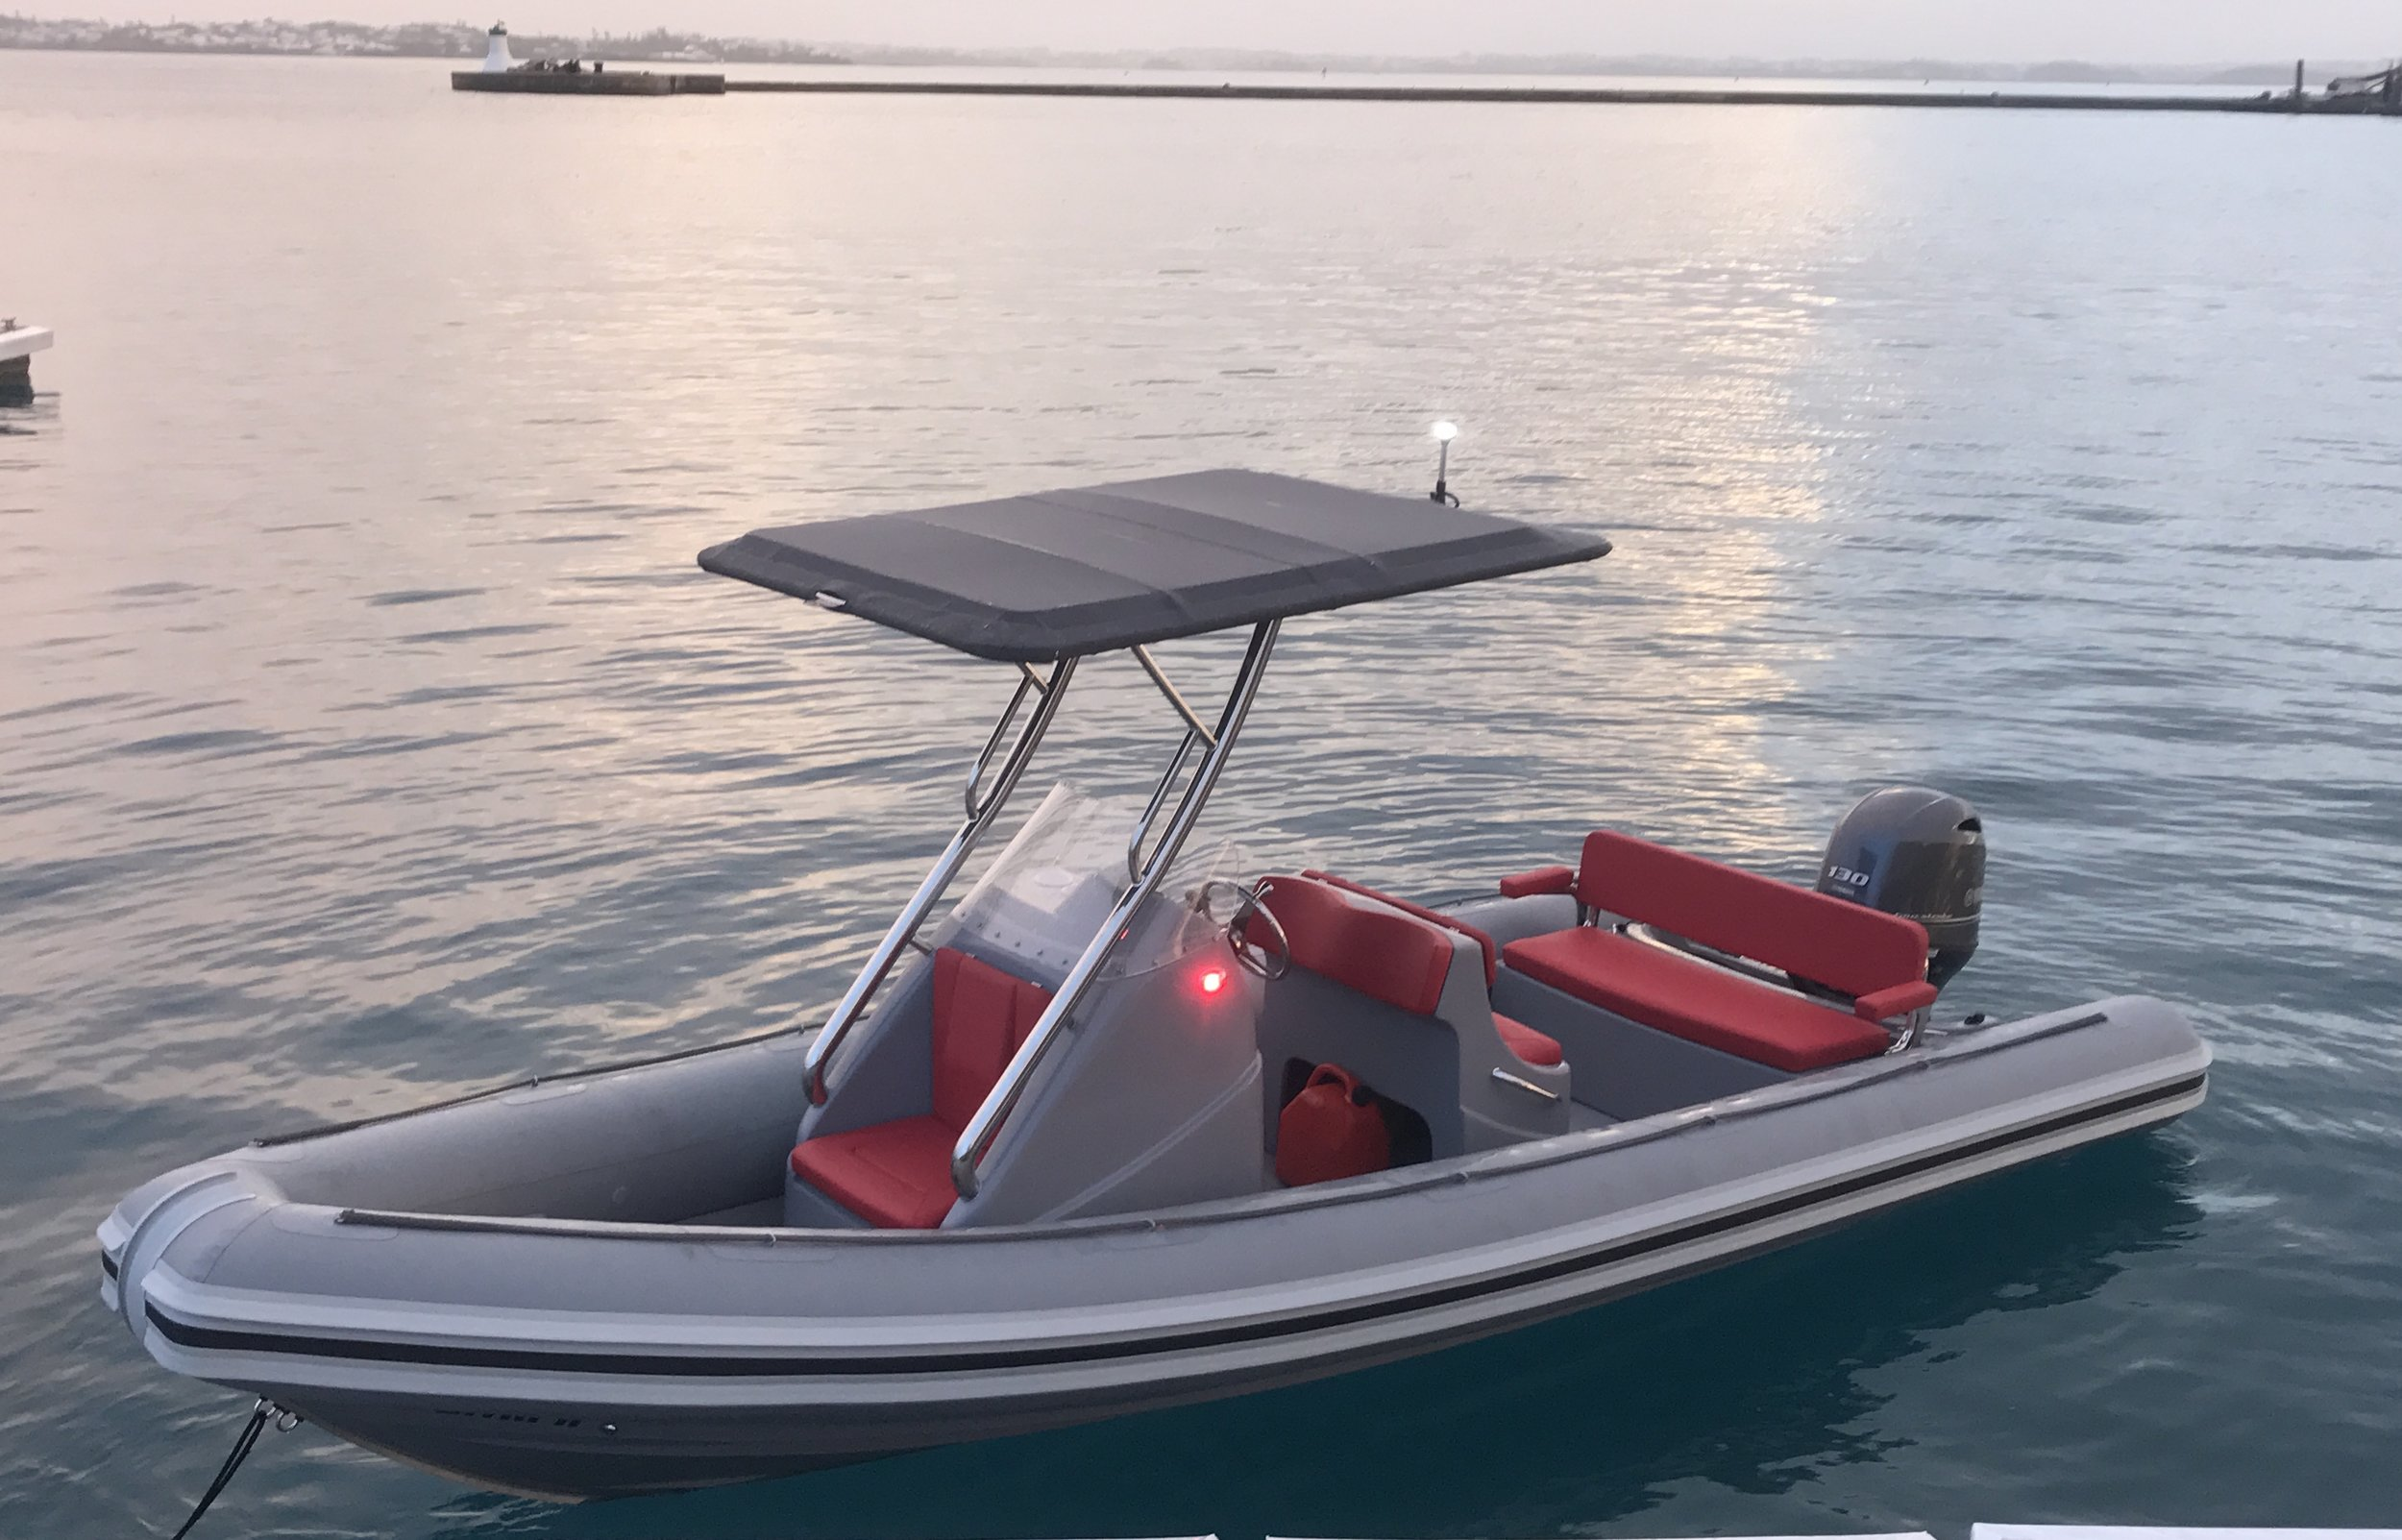 Waverider 650 - Length - 6.5m, Max Beam - 2.40mMax Persons - 9Priced from - $65,000 (with engine)